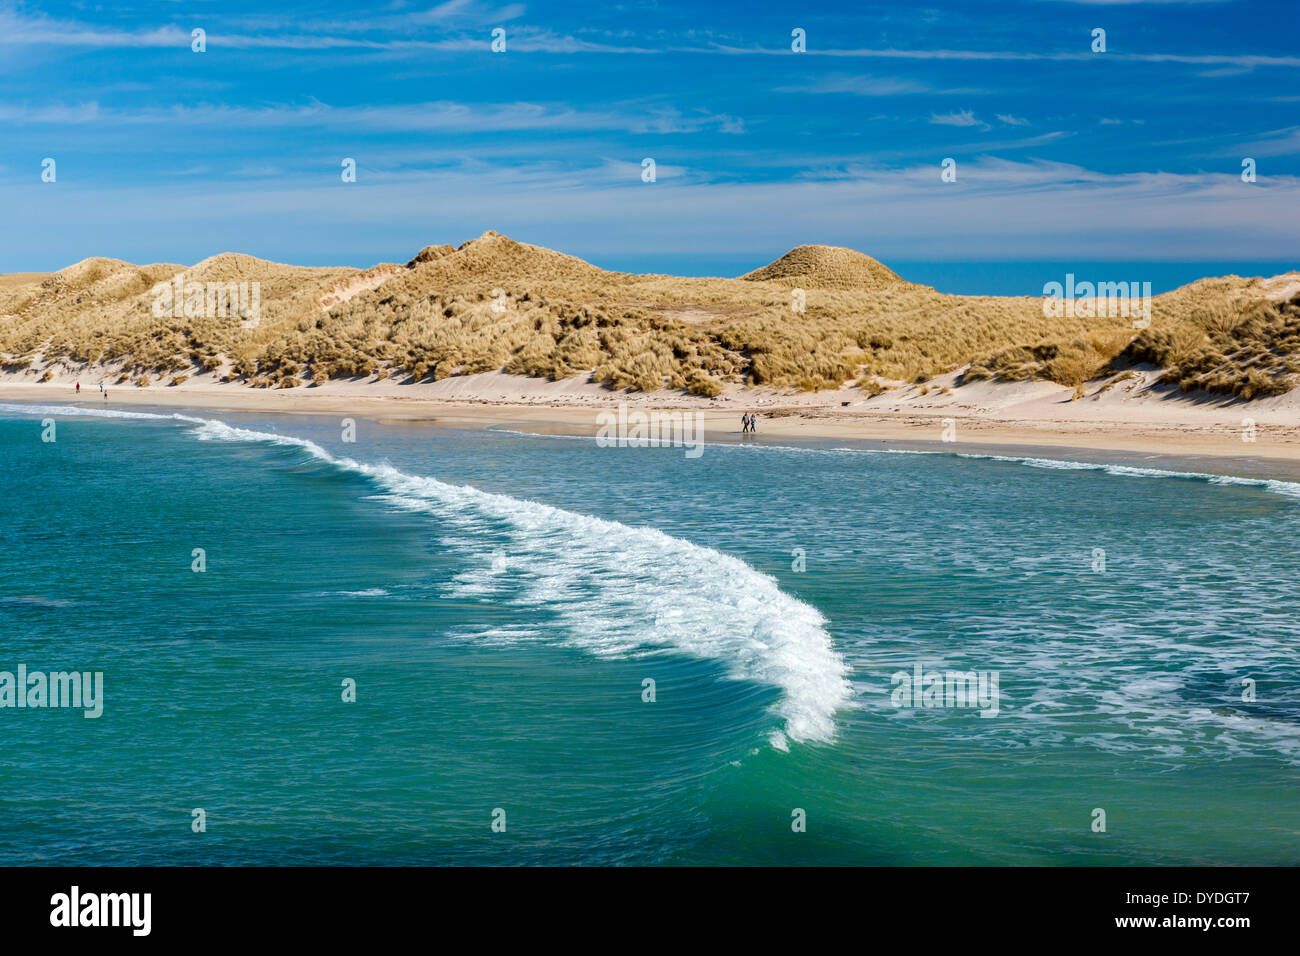 A view of Balnakeil Bay in the north Highland. - Stock Image